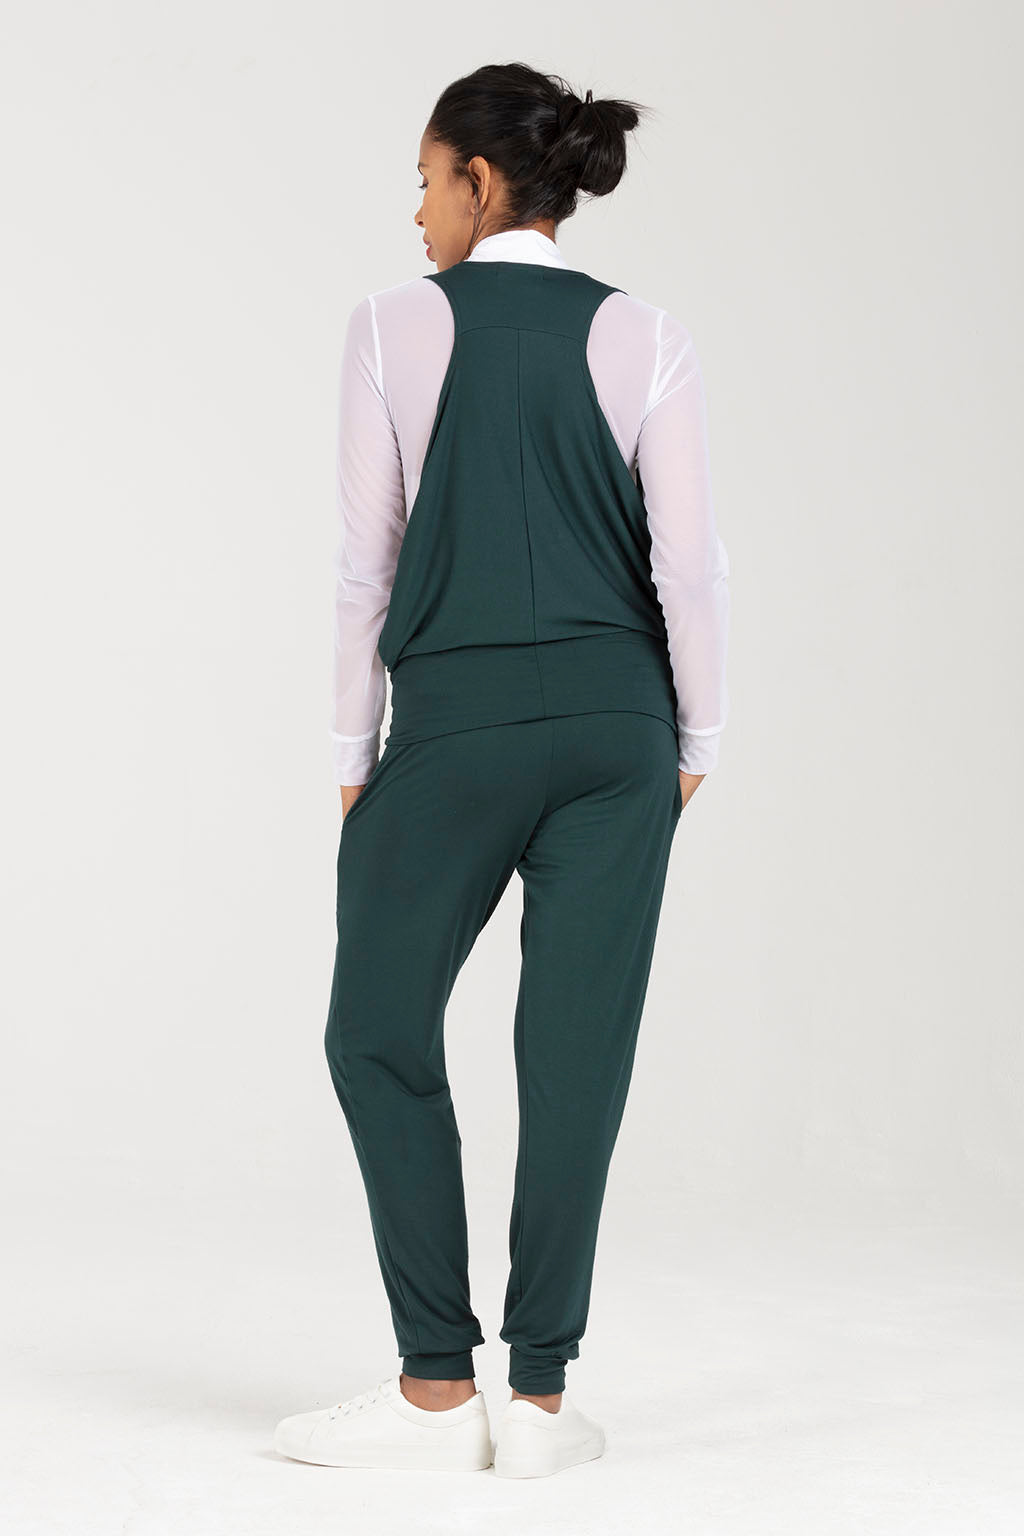 Postnatal Soft Trousers With Pockets - Joggers in Green - C Section Support | Bouddica by Sarka London - Back View